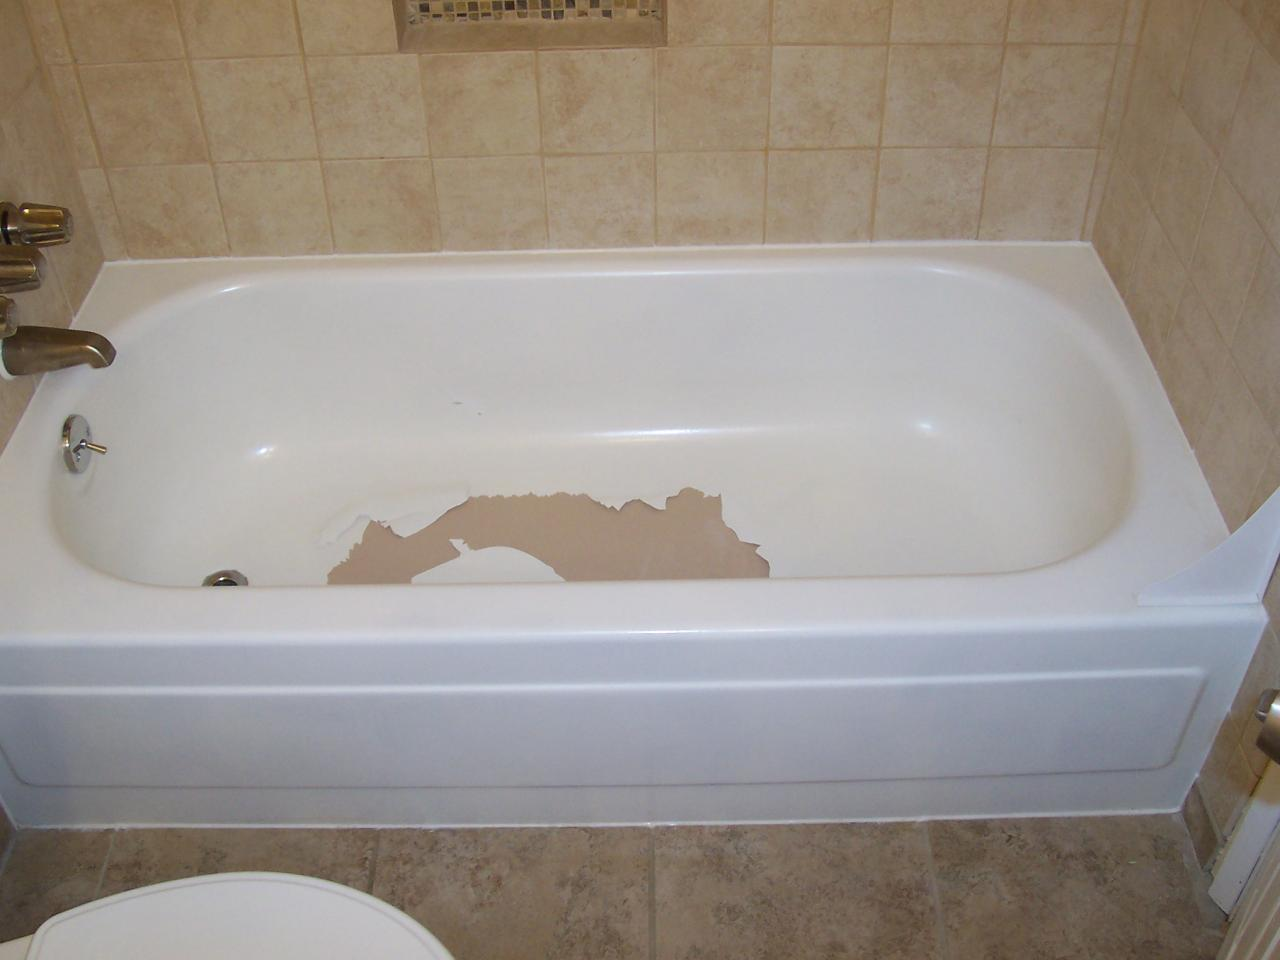 Are You Sure You Want to go with the Lowest Price for your Shower Remodel?